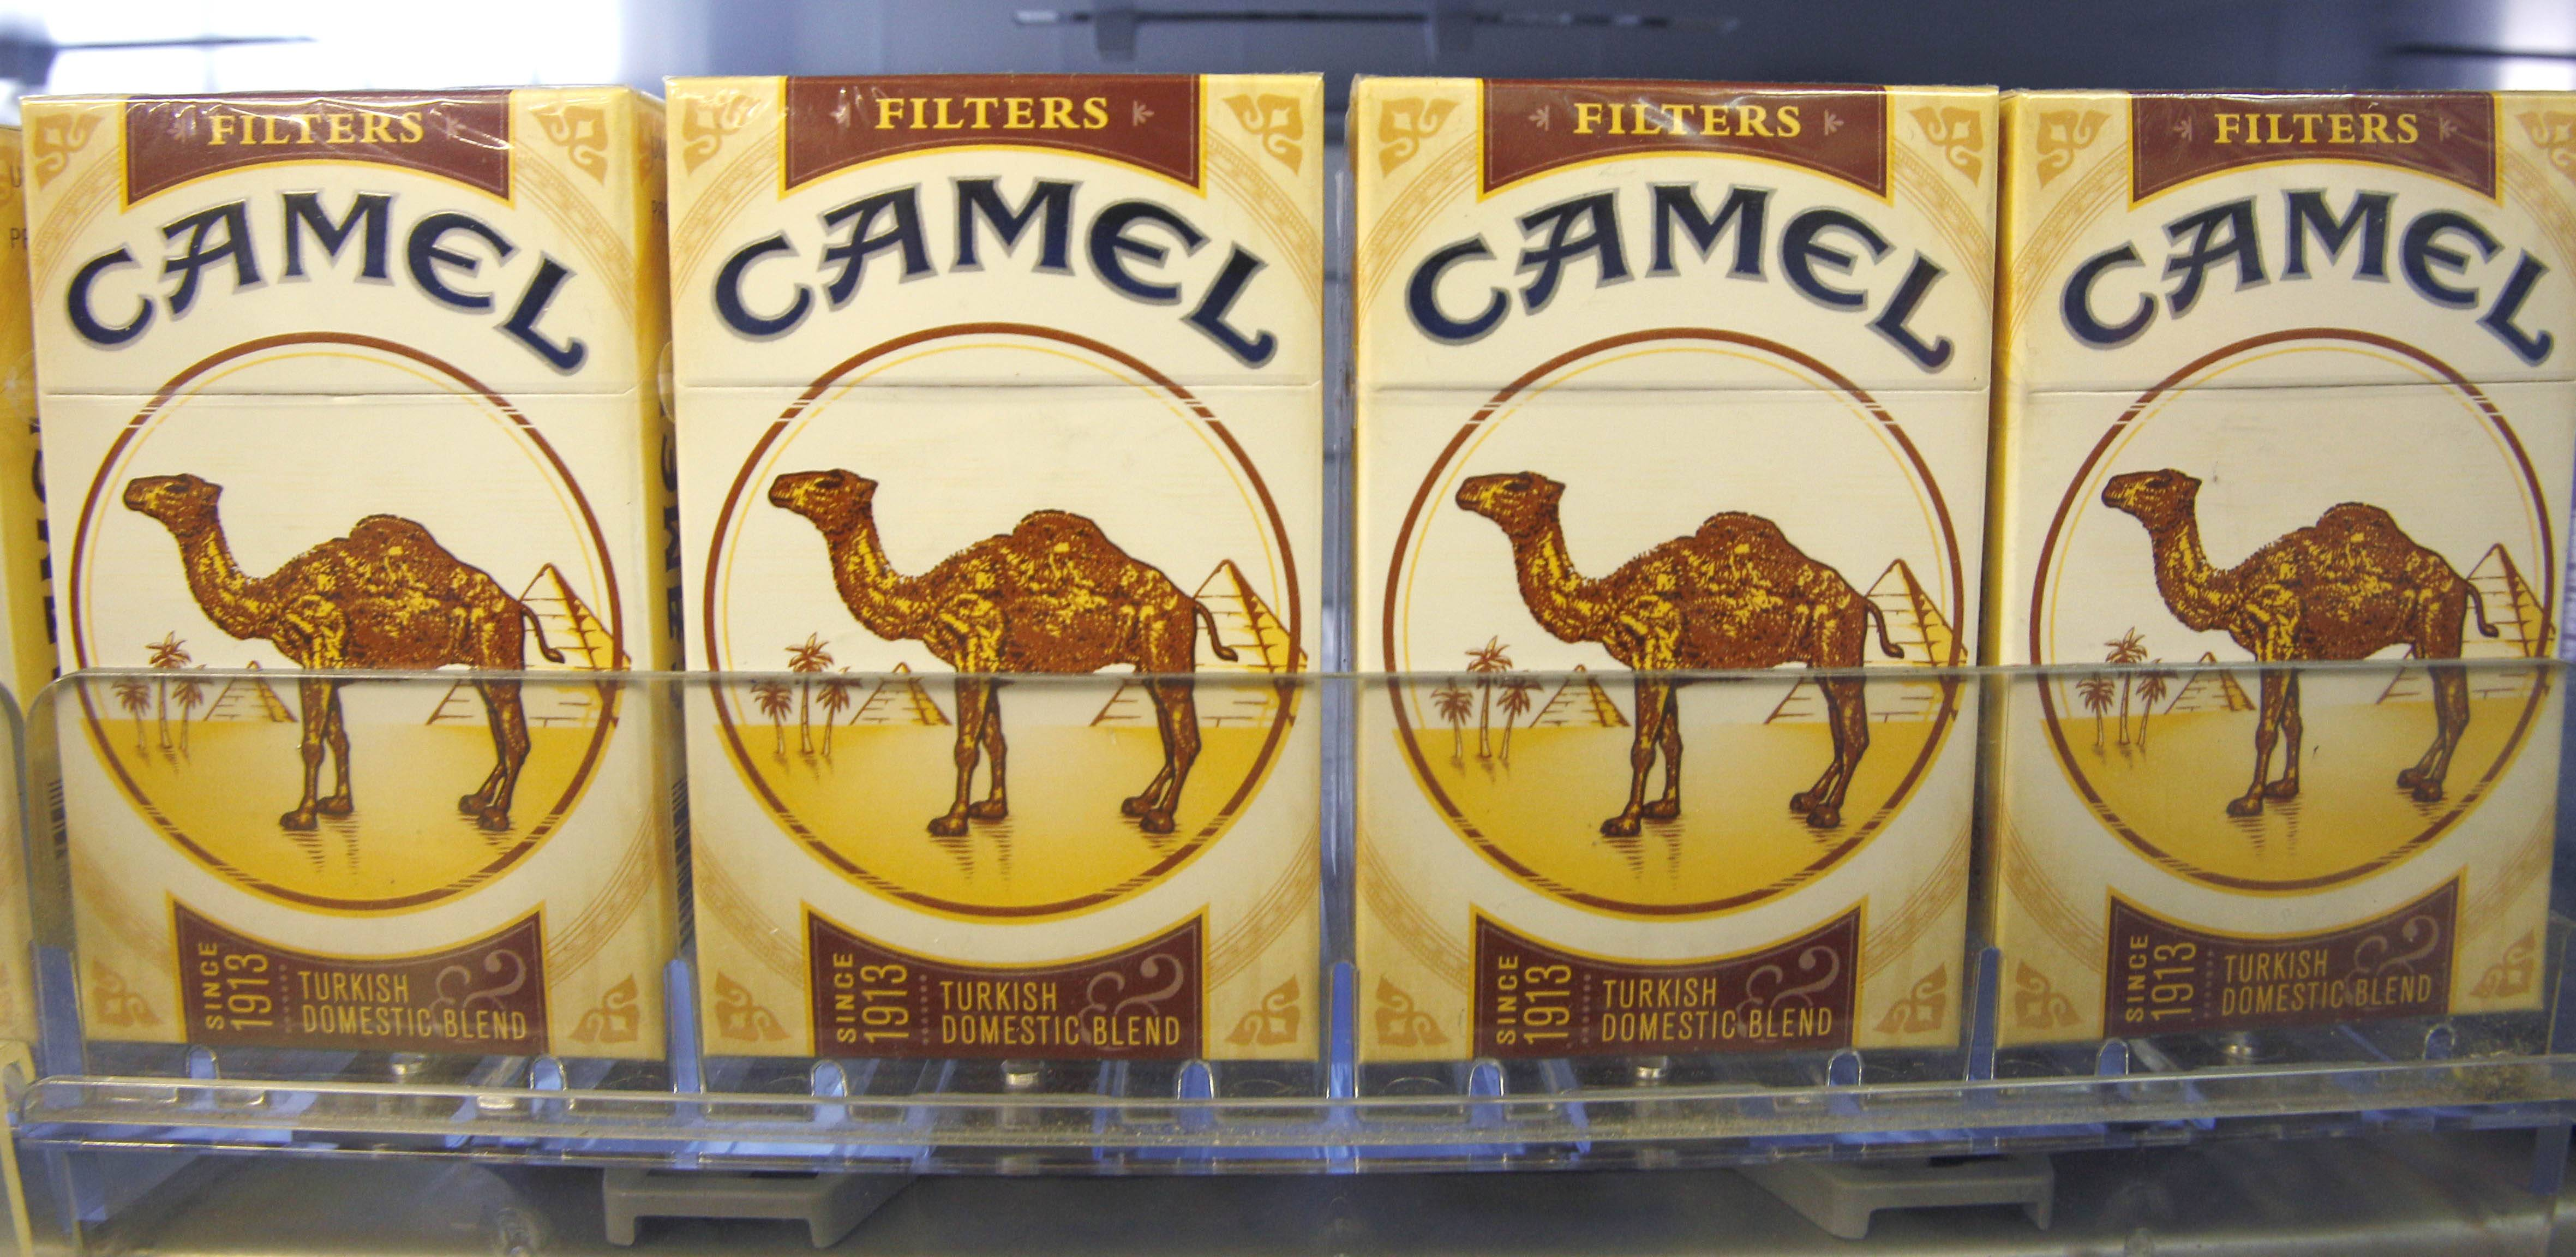 Cigarette makers Reynolds American Inc., makers of Camel cigarettes,  and Lorillard Inc. say they are in talks of a possible merger that would combine two of the nation's biggest tobacco companies.